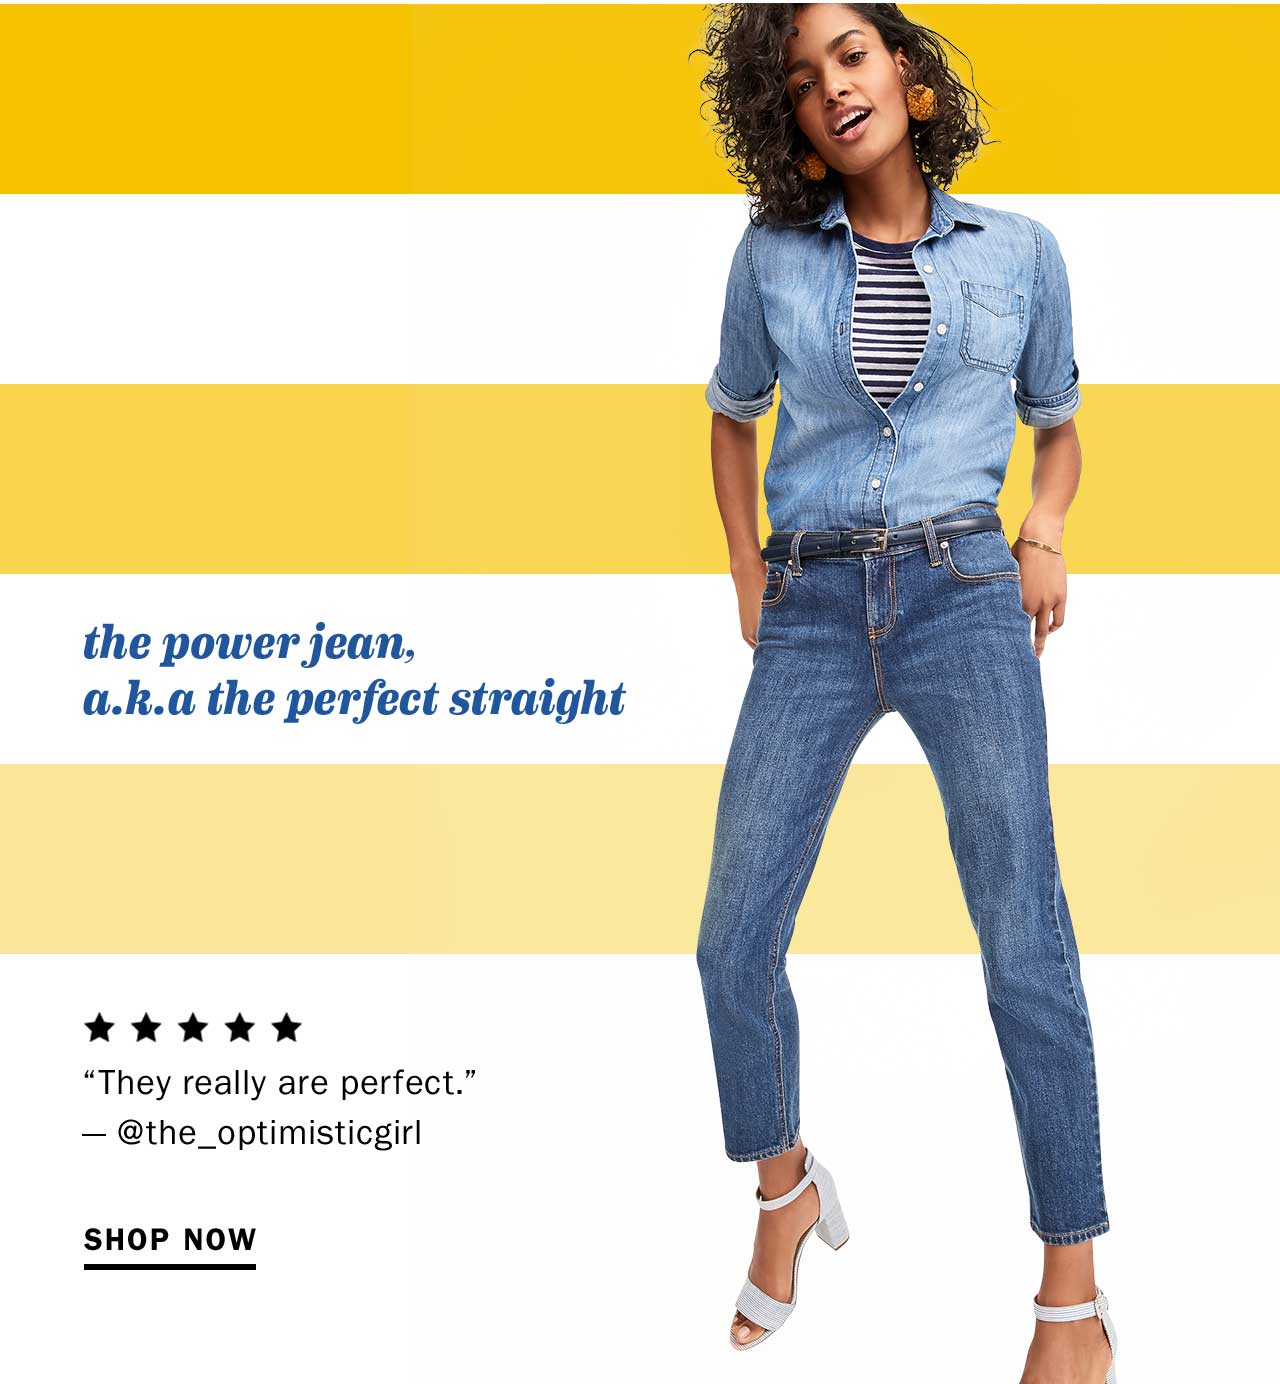 the power jean, a.k.a the perfect straight  | SHOP NOW